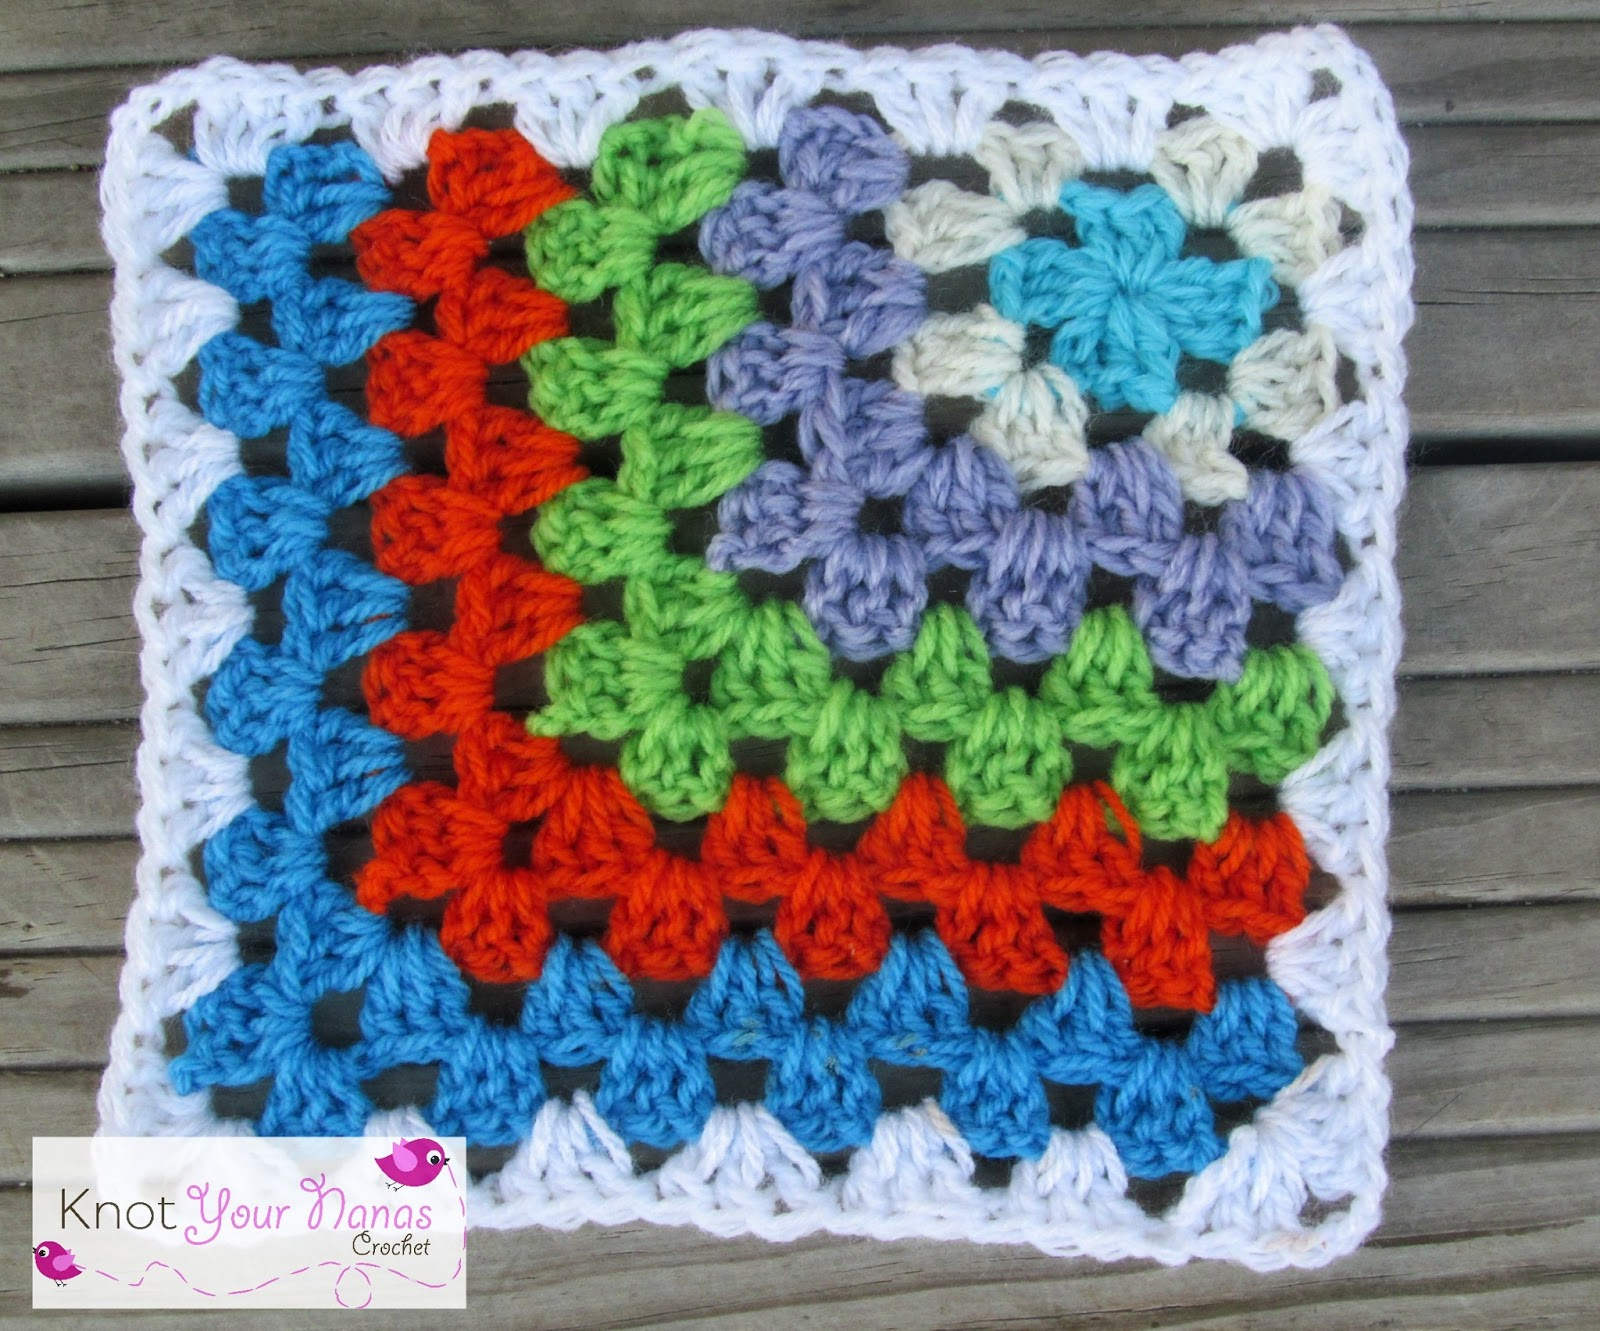 Knot Your Nanas Crochet: Granny Square CAL (Week 7)